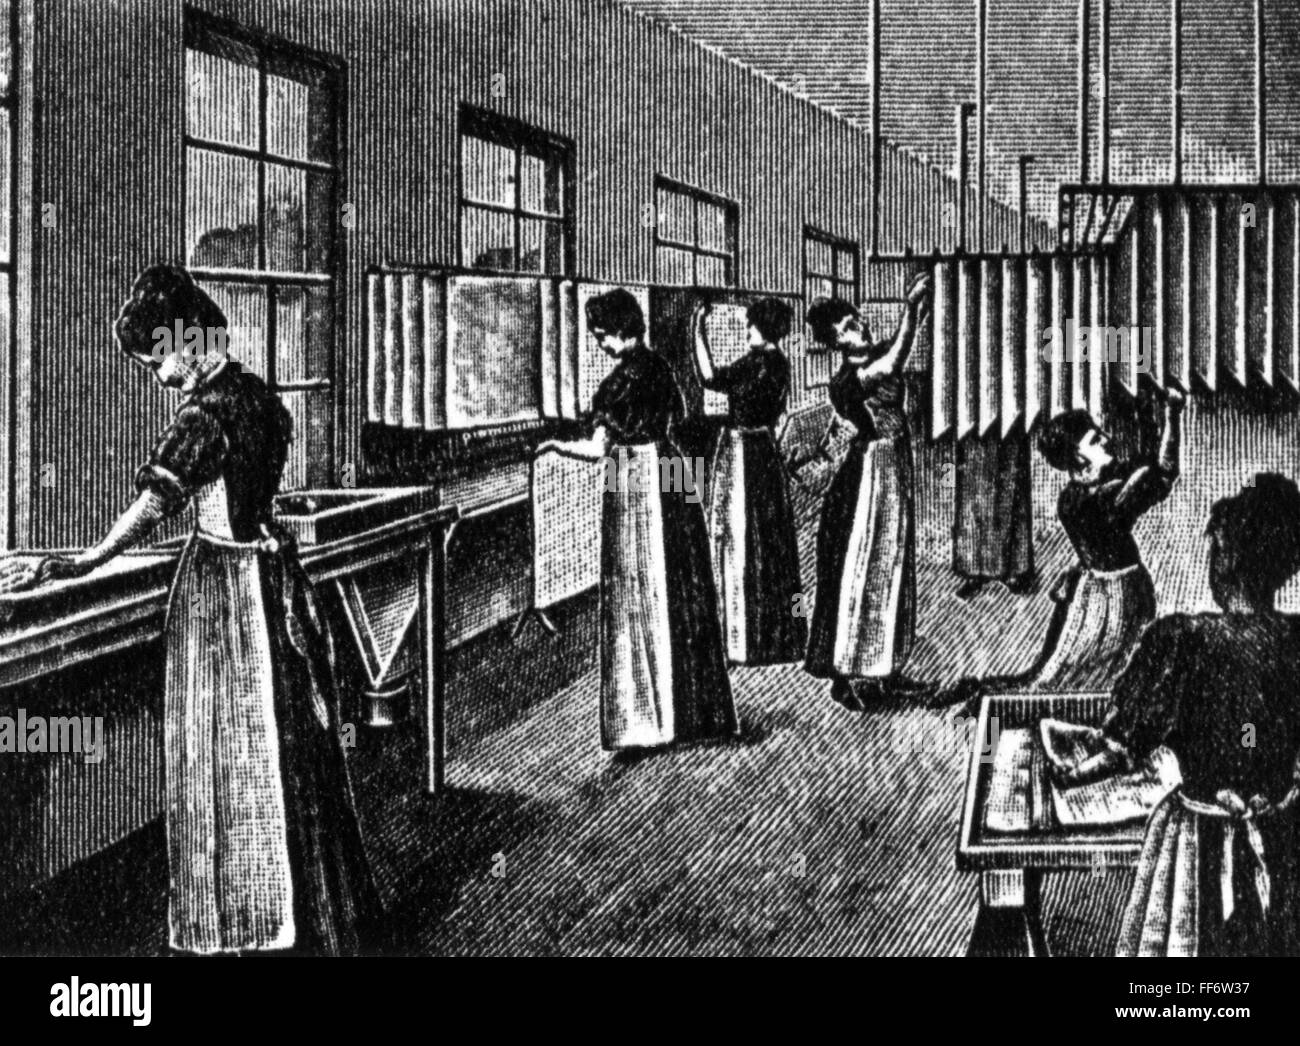 Manufacture of photographic paper, 19th century - Stock Image